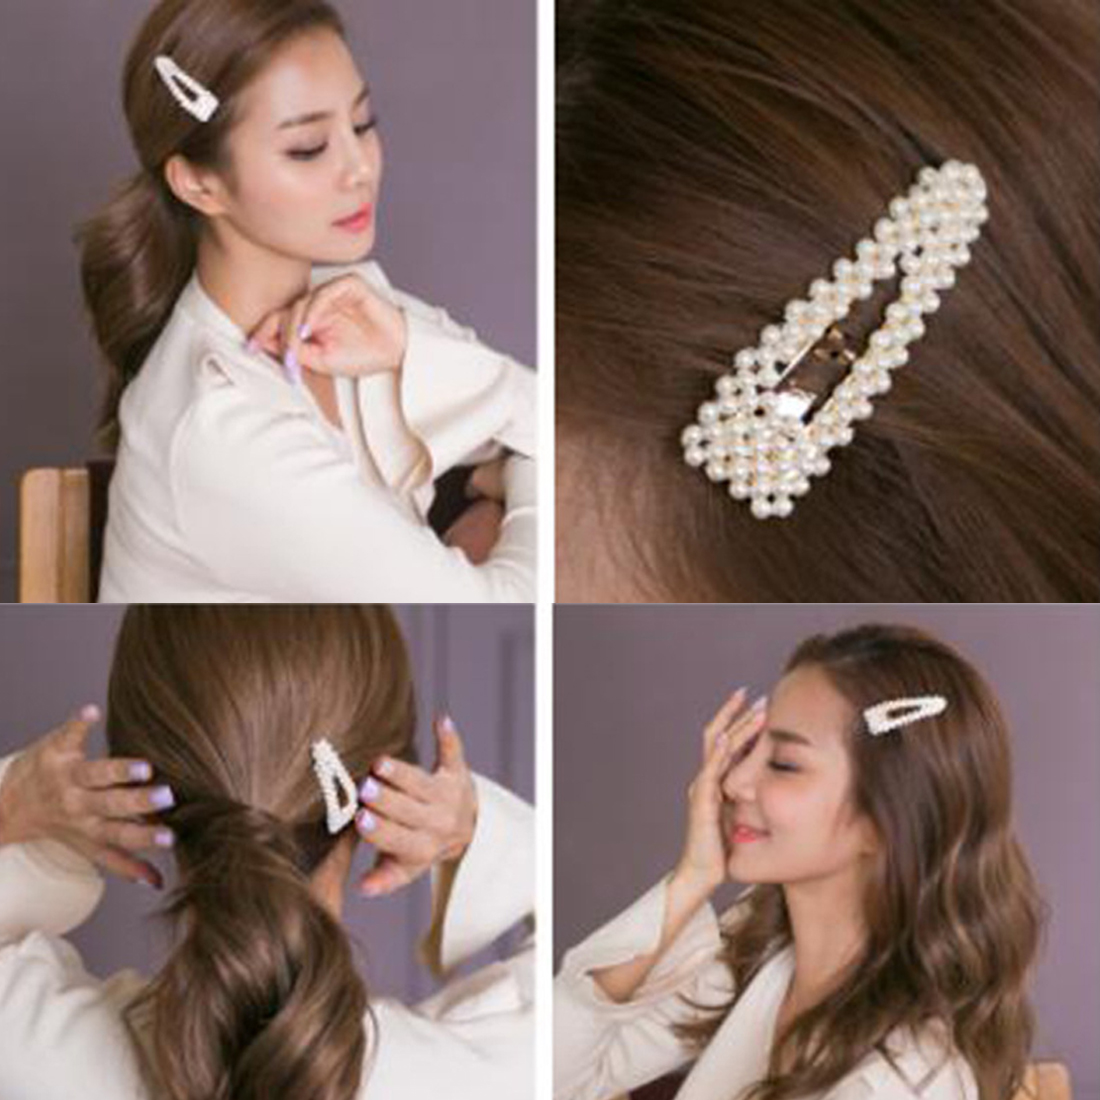 Pearl Metal Hair Clip Hairband Comb Bobby Pin Barrette Hairpin Headdress Accessories Beauty Styling Tools in Women 39 s Hair Accessories from Apparel Accessories